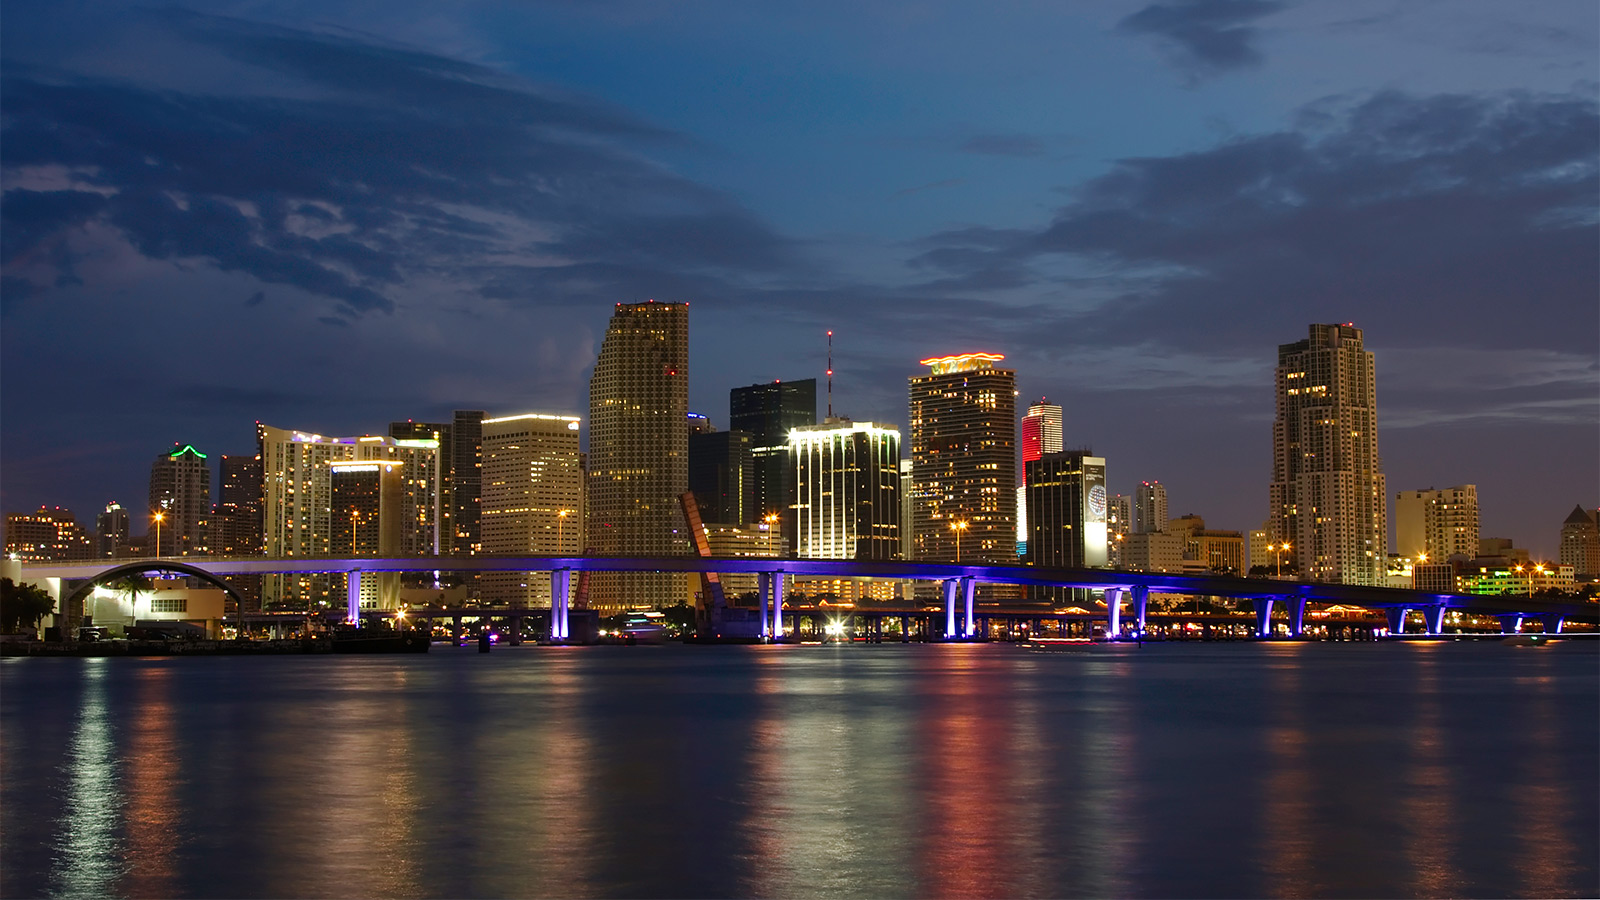 Night_Panorama_Miami_Florida_54621